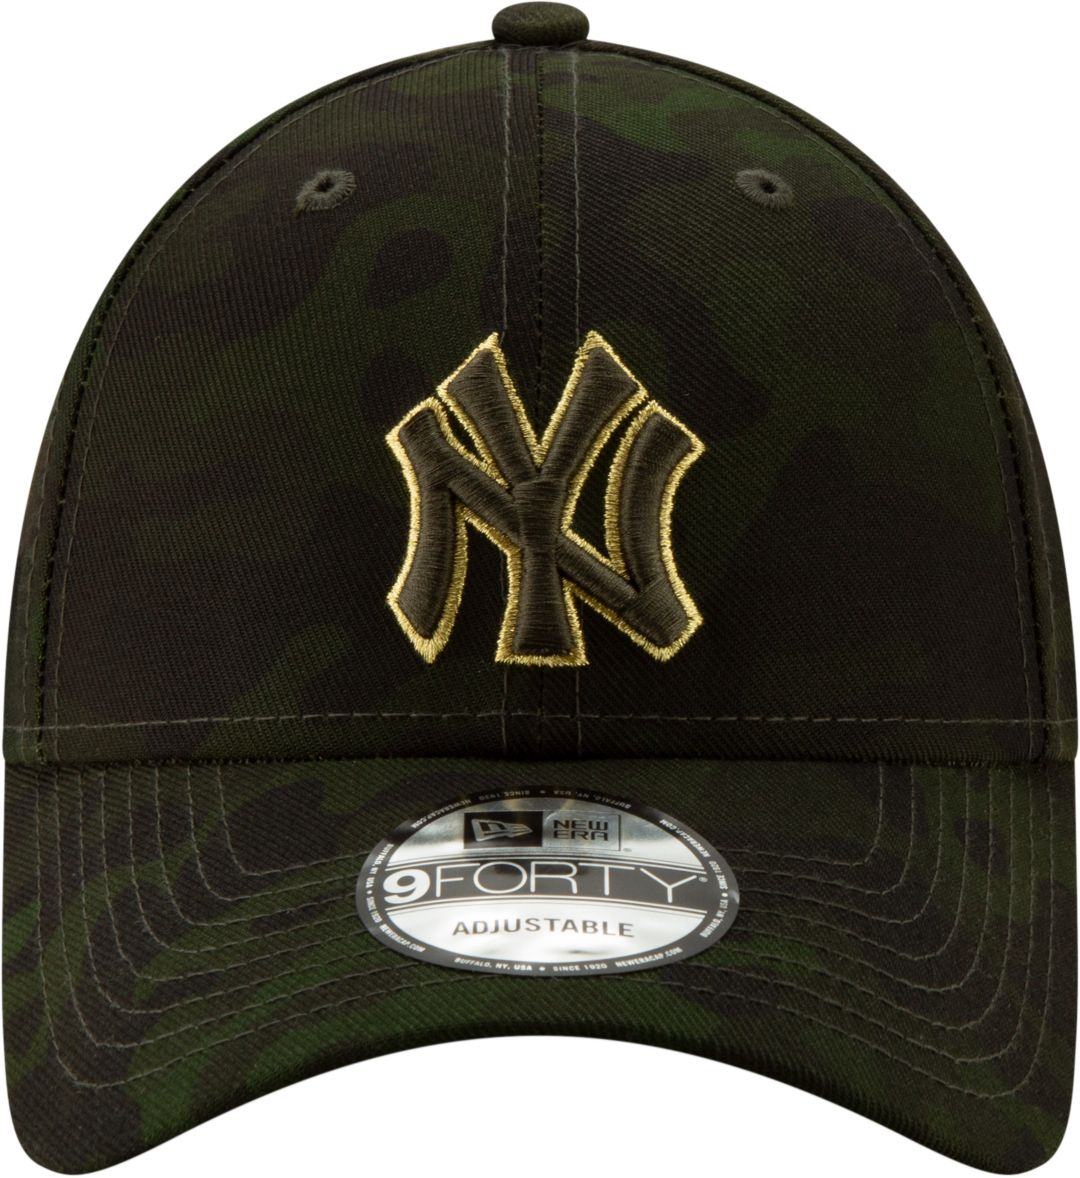 7134147dfb790 New Era Men's New York Yankees 9Forty Armed Forces Adjustable Hat ...